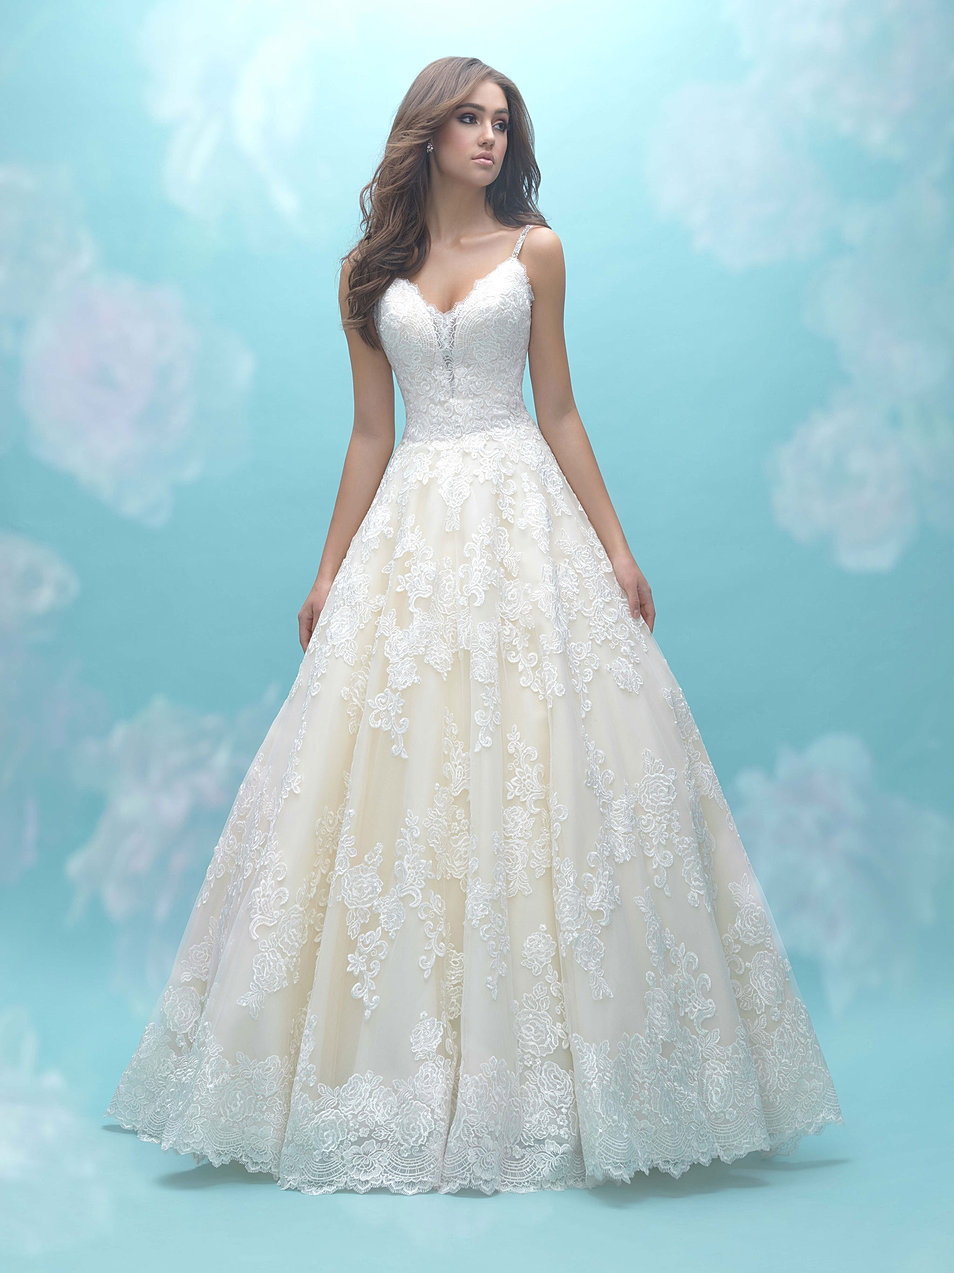 Beautiful Bridal Gowns Ottawa Ensign - All Wedding Dresses ...